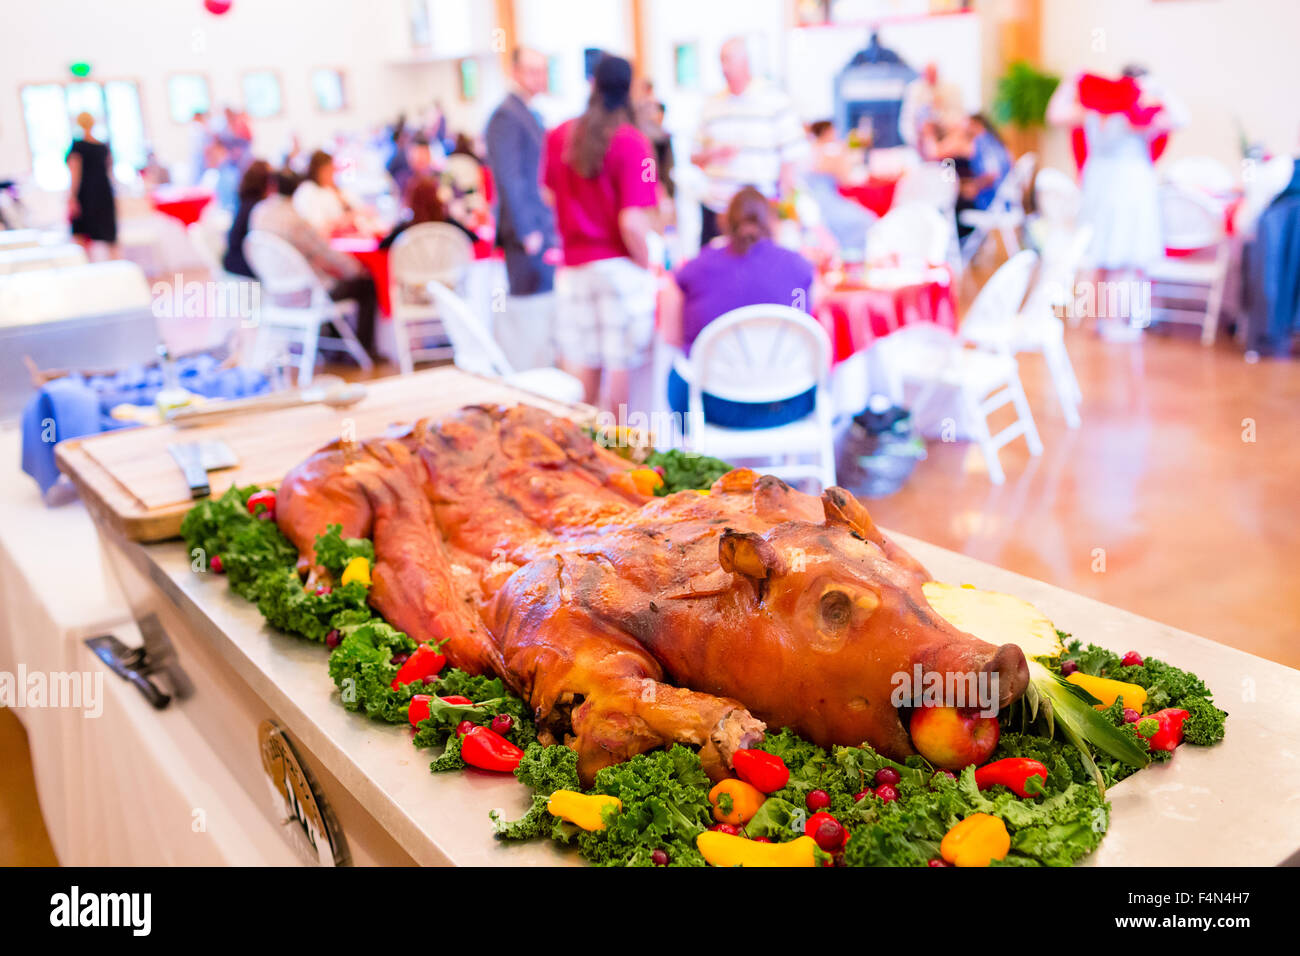 Whole Pig At A Wedding Reception With An Apple In Its Mouth On A